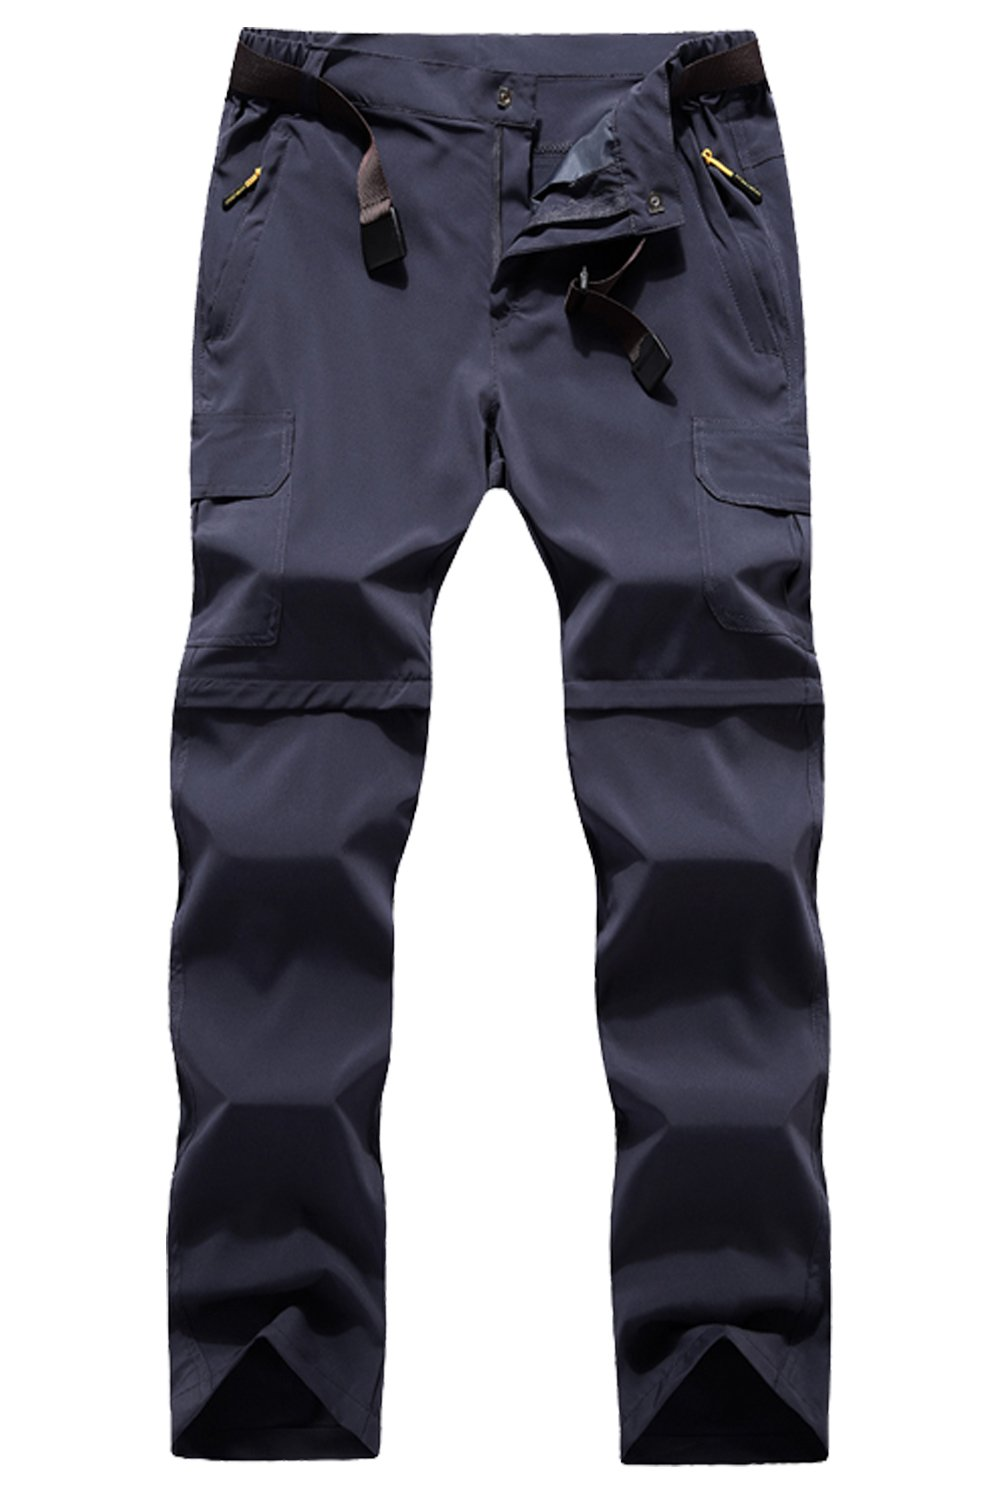 Mr. stream PANTS メンズ B071K5ZBVF US 29 /Chinese Label 2XL (Fit 29